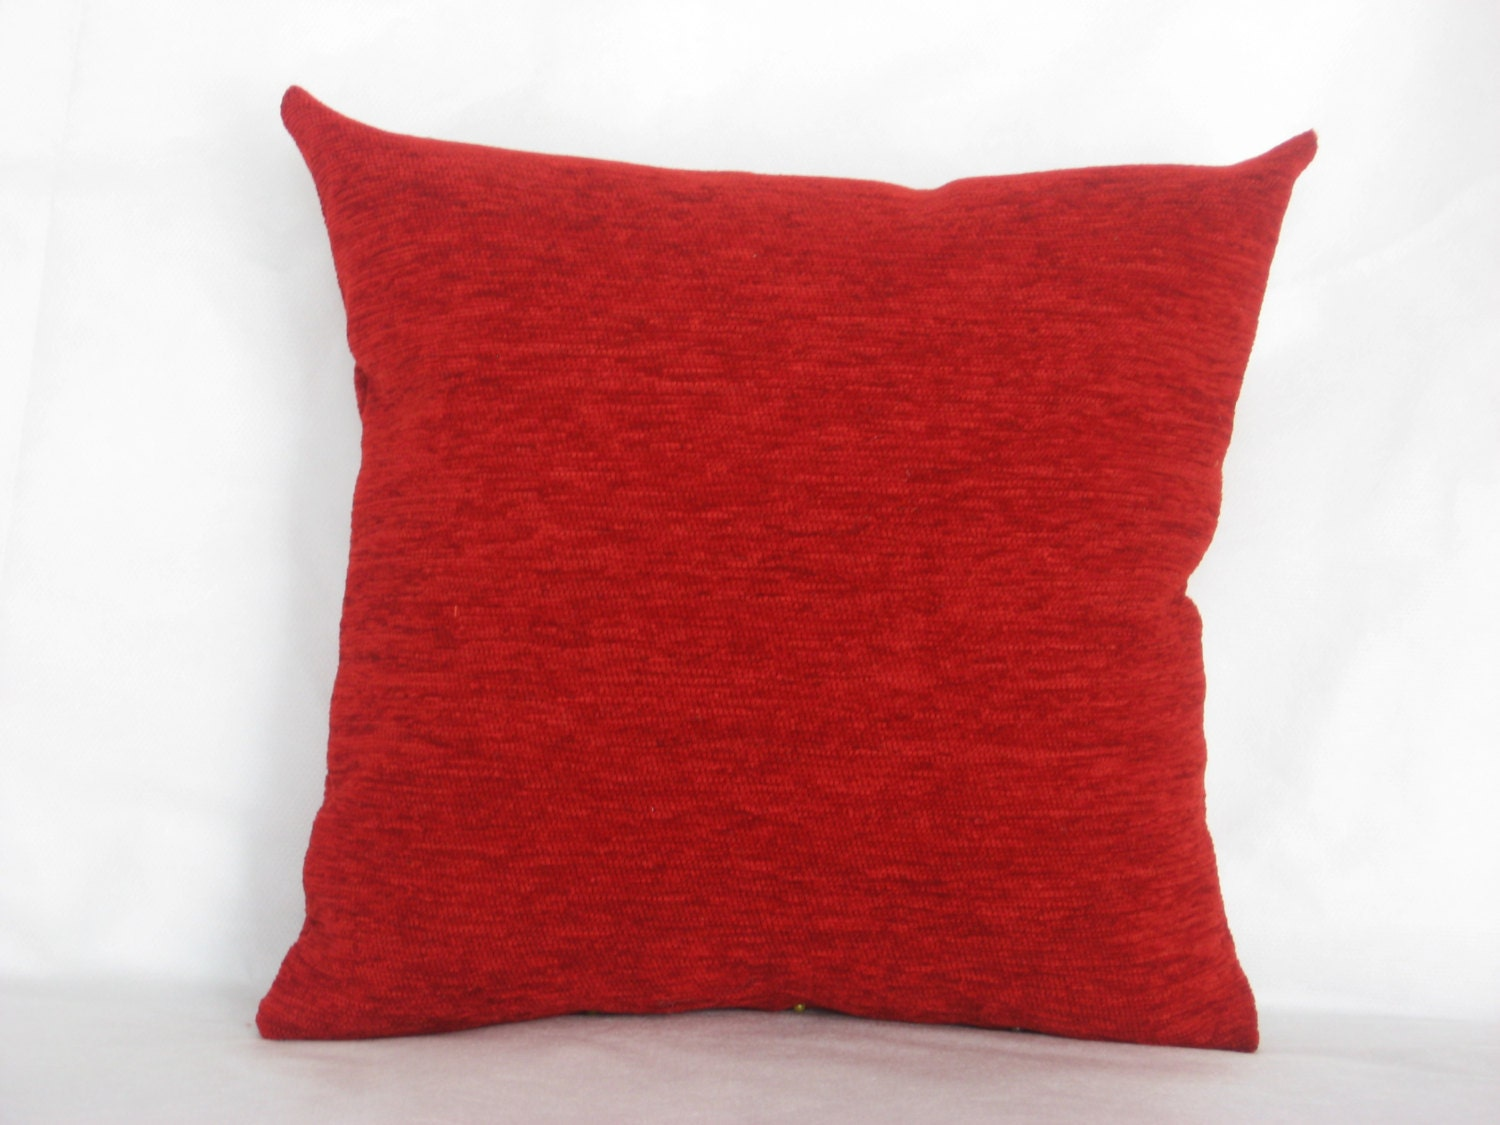 Throw Pillows Horchow : Red chenille luxury handmade throw pillow pillow